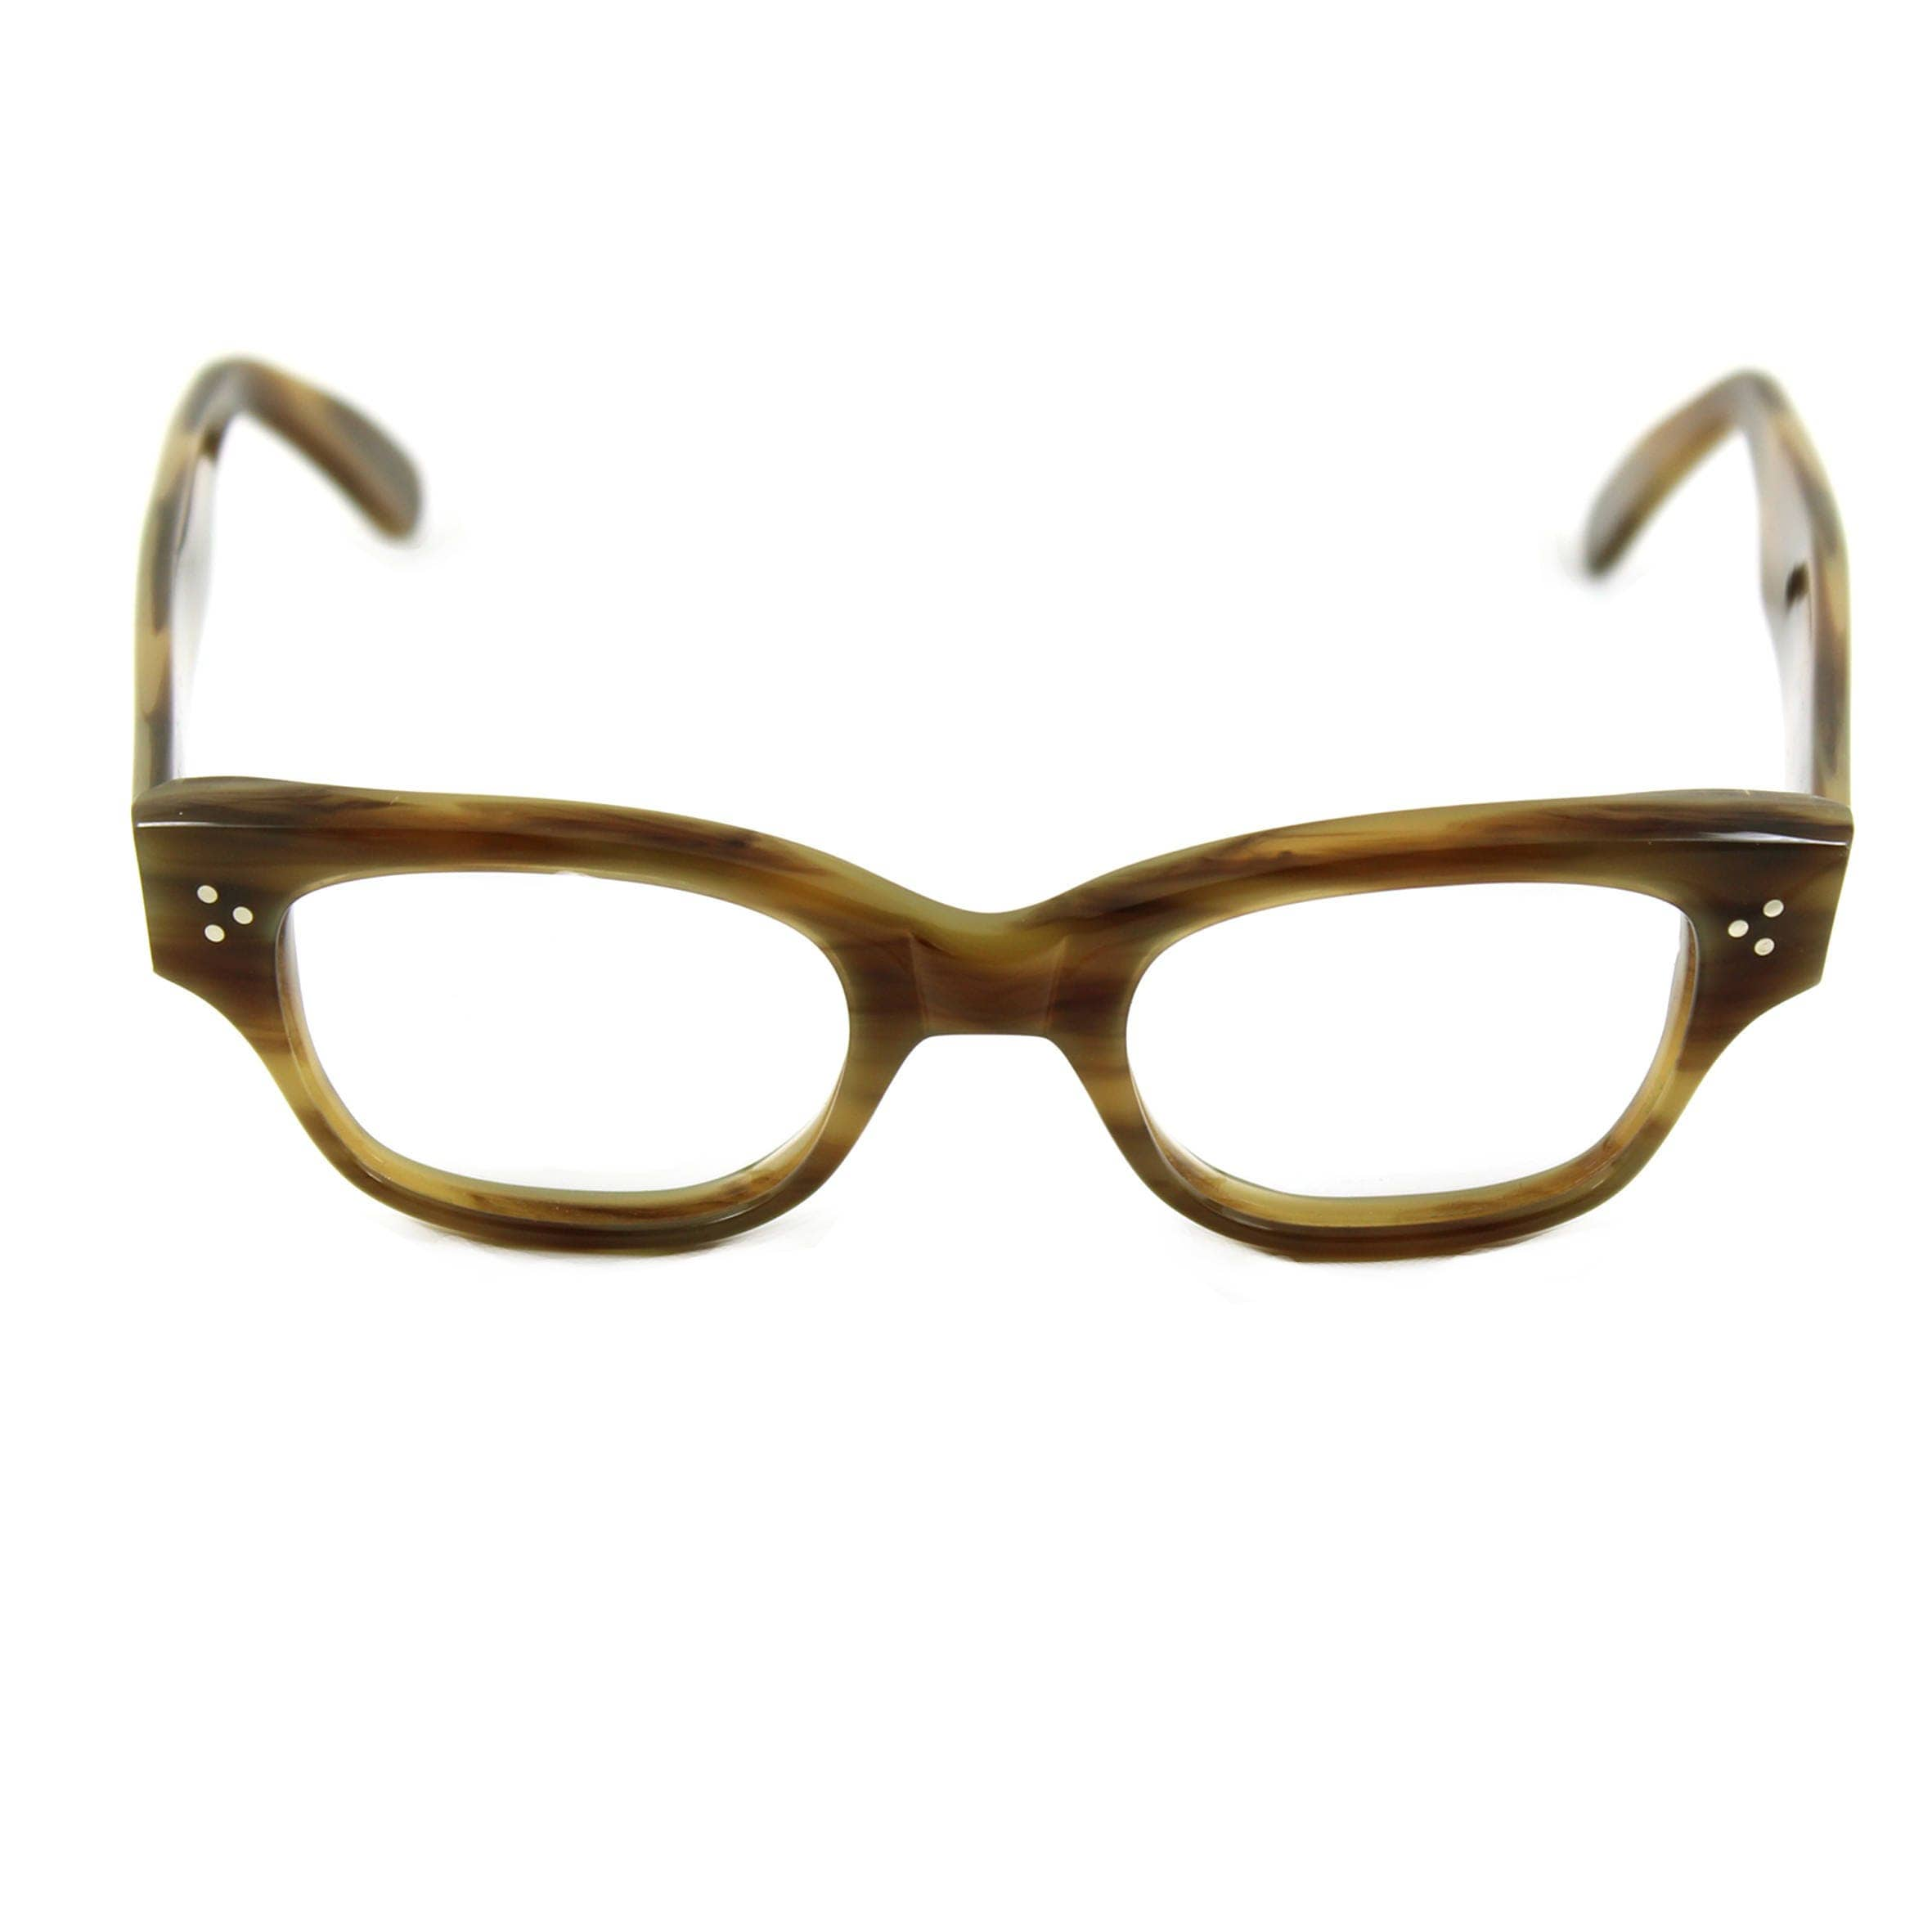 Handmade spectacles Bold artistic beatnik HOWARD Havana Olive Contemporary unisex Style inspired by original 1950s 60s designs. Rx ready